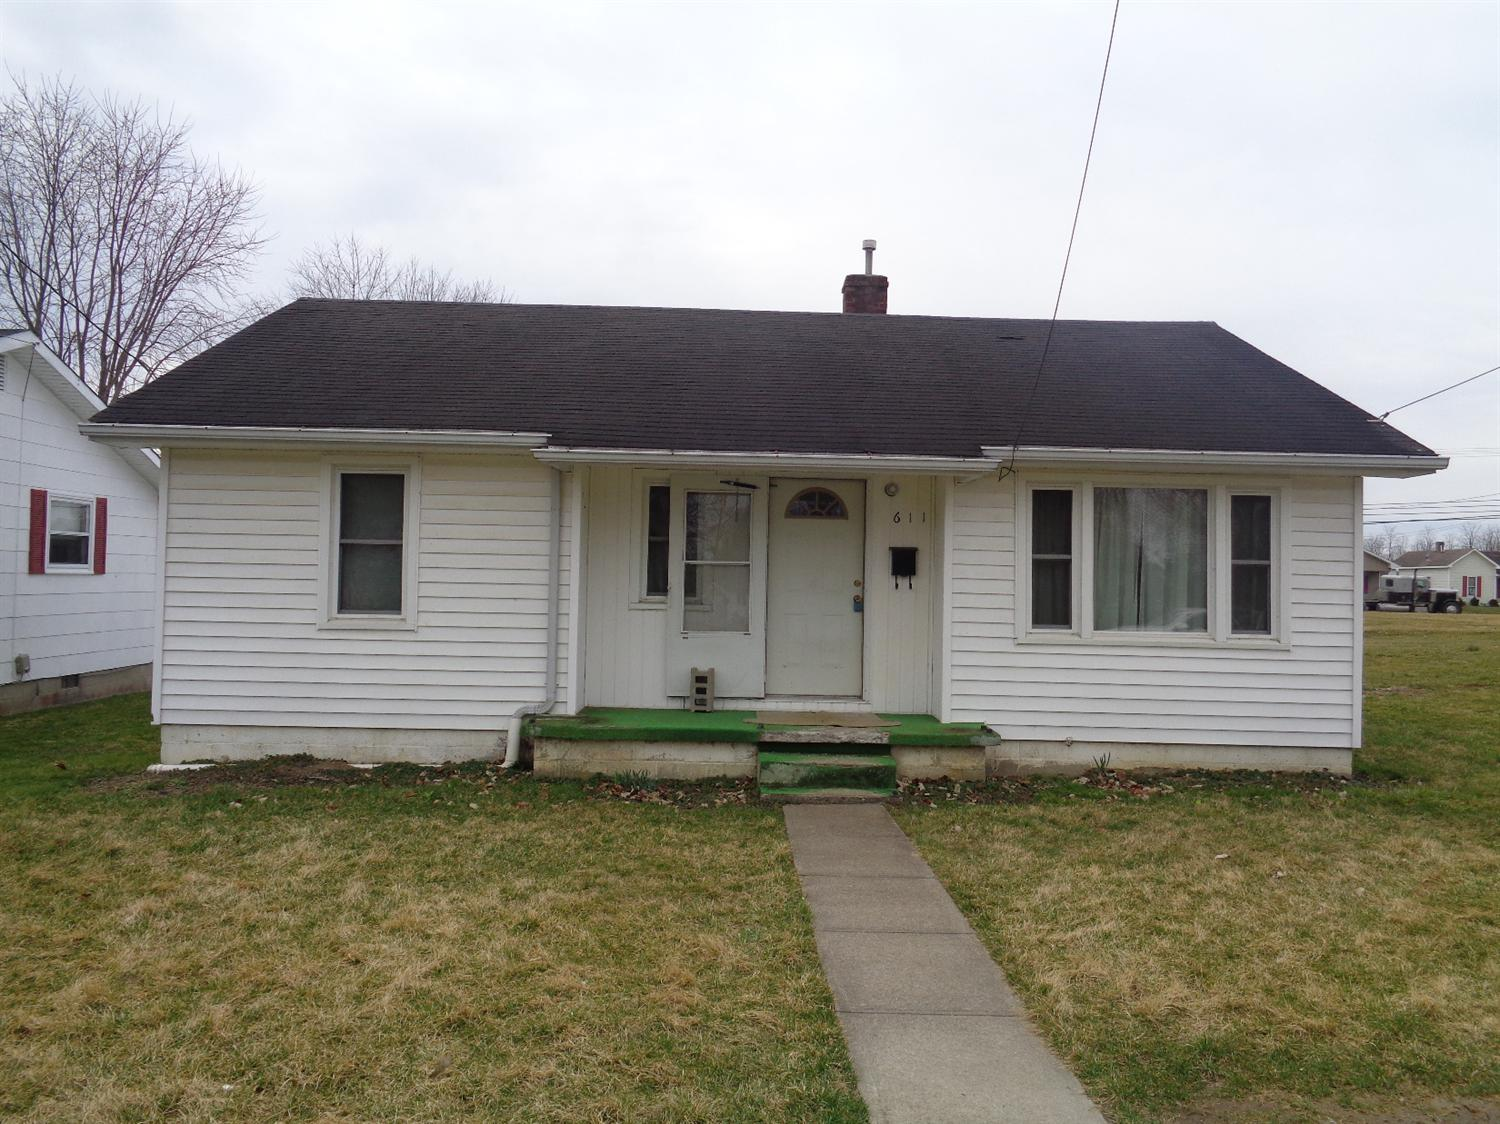 Photo 1 for 611 Woolery St Falmouth, KY 41040